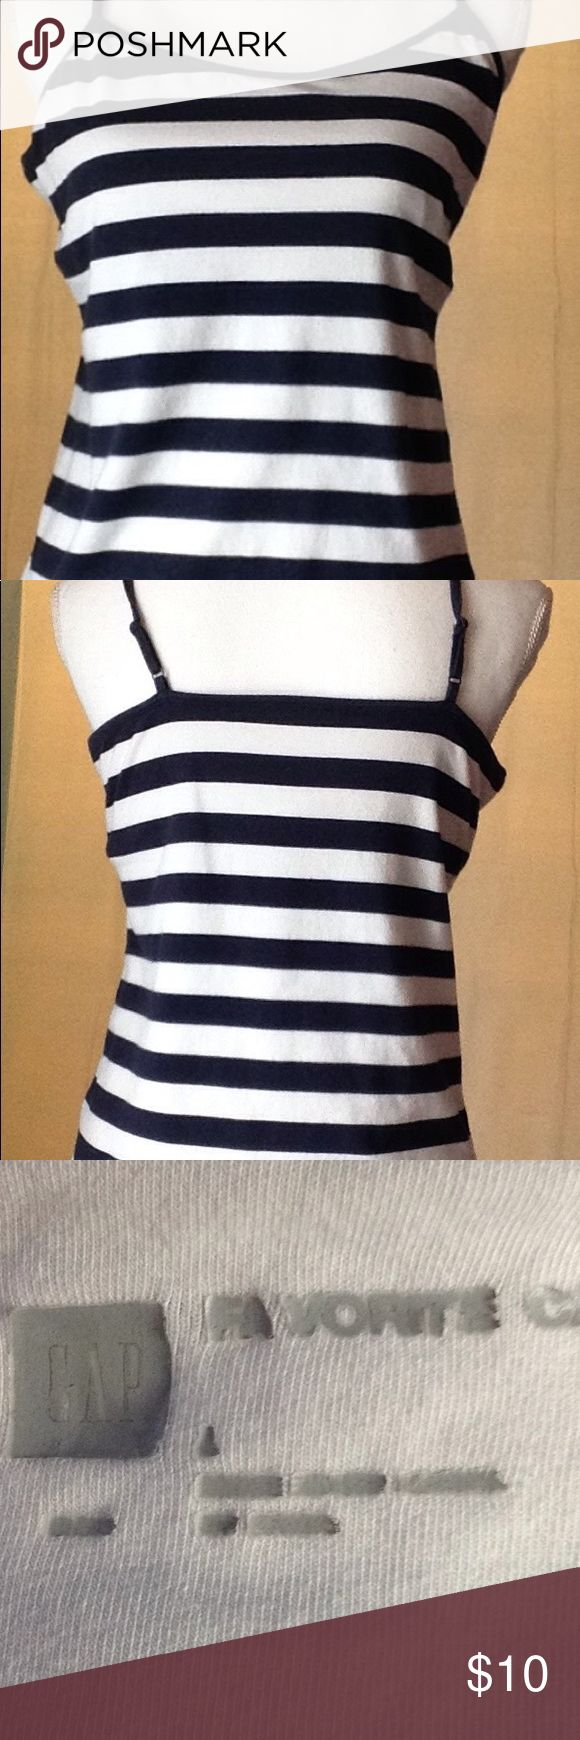 Striped Cami by GAP sz L Navy blue and white striped Cami size L with shelf bra.Machine wash cold tumble dry low GAP Tops Camisoles